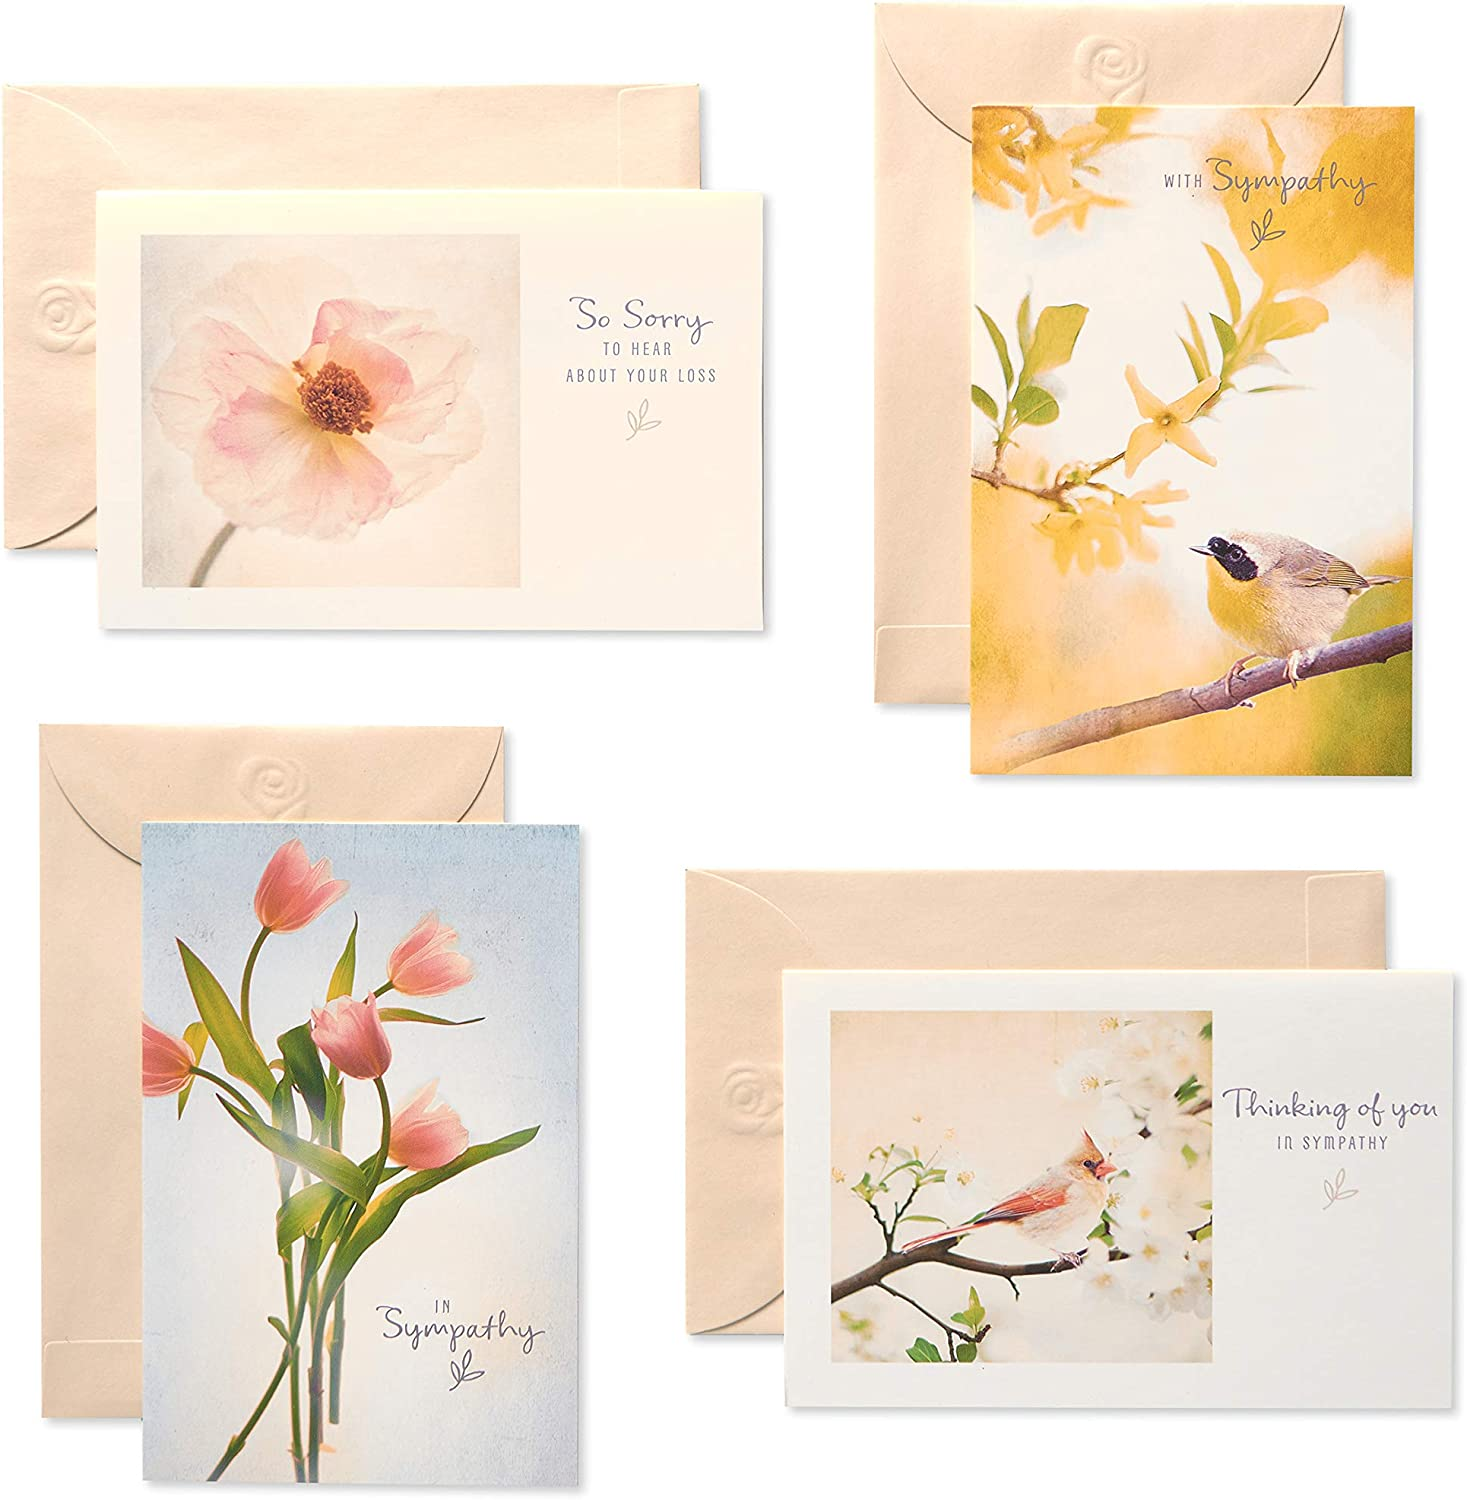 American Greetings Popular product Sympathy Cards OFFicial shop Assortment Flo Envelopes with